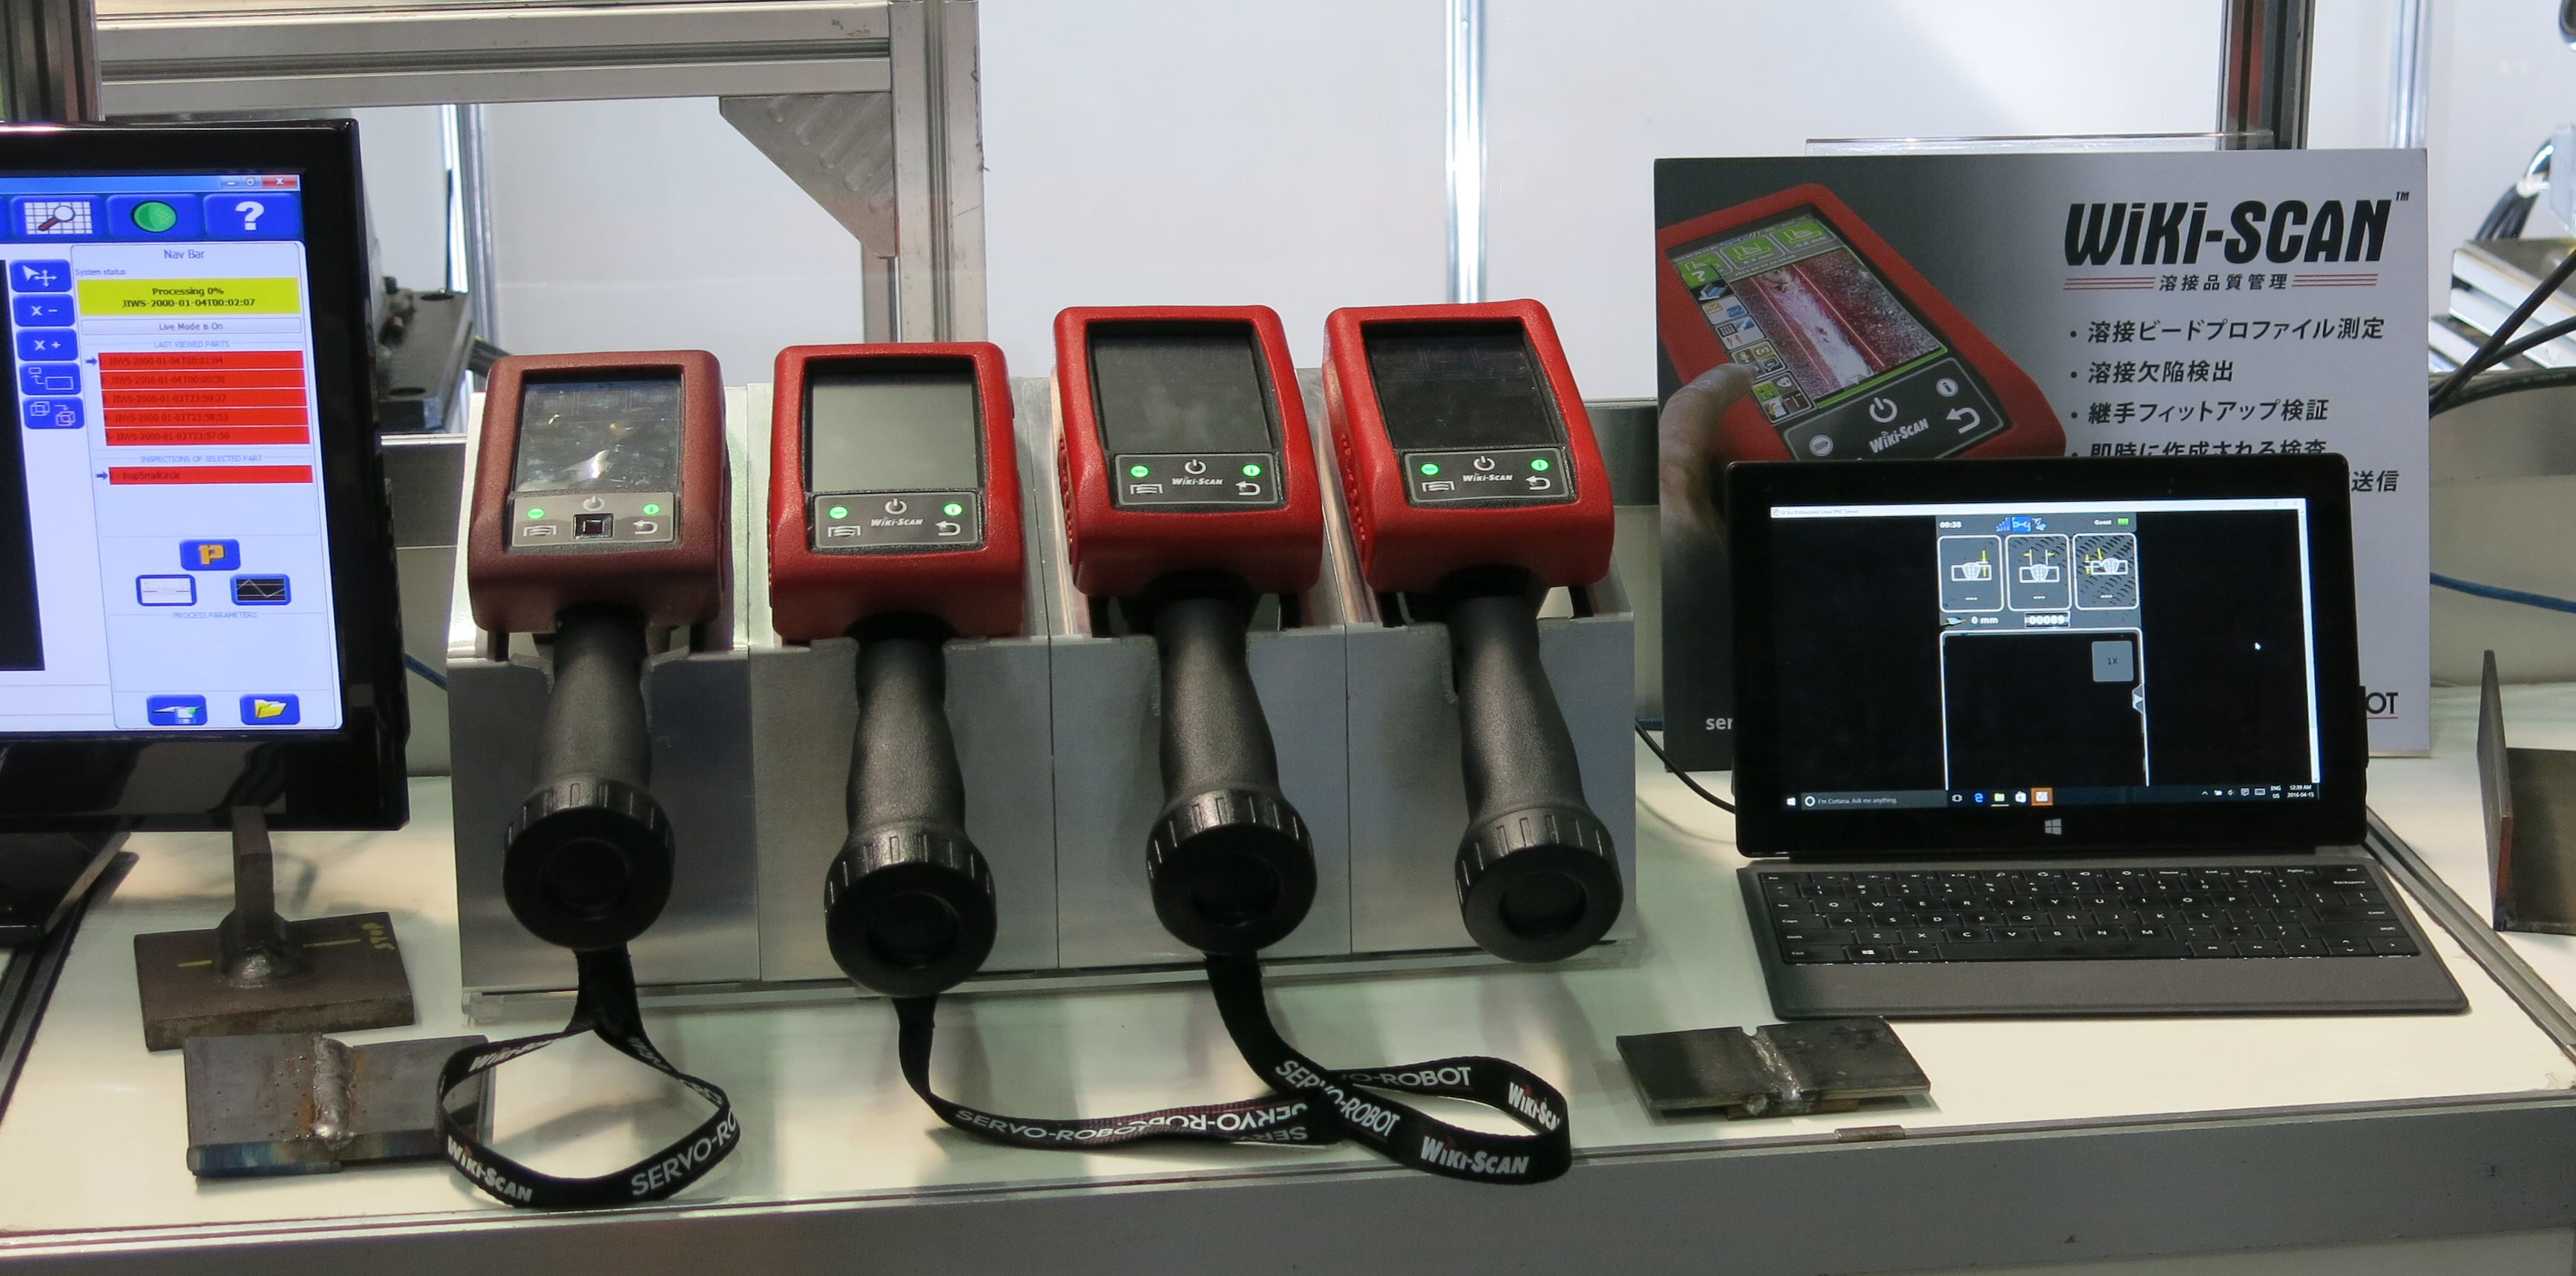 WiKi-SCAN™ at the International Welding Show 2016